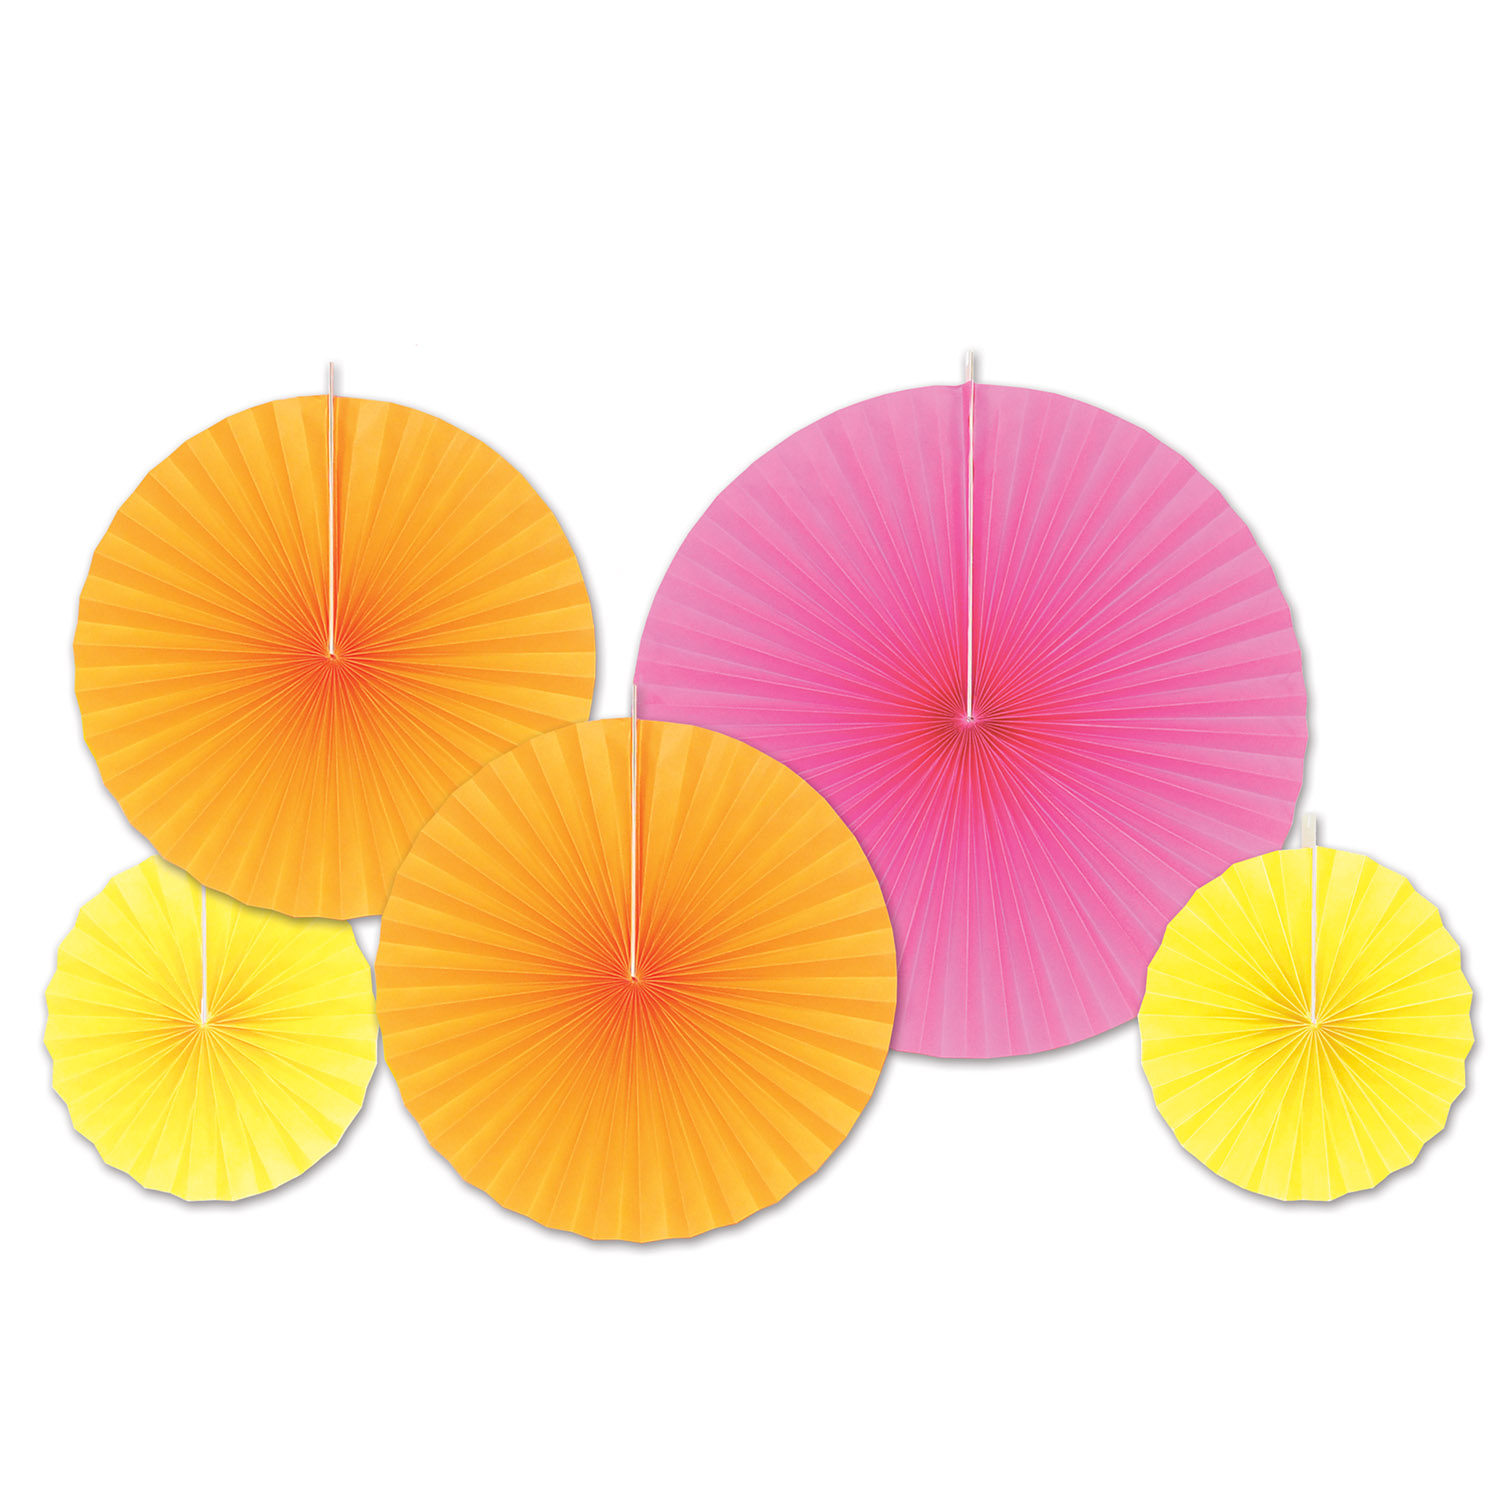 Assorted sized accordion paper fans in orange, pink, and yellow